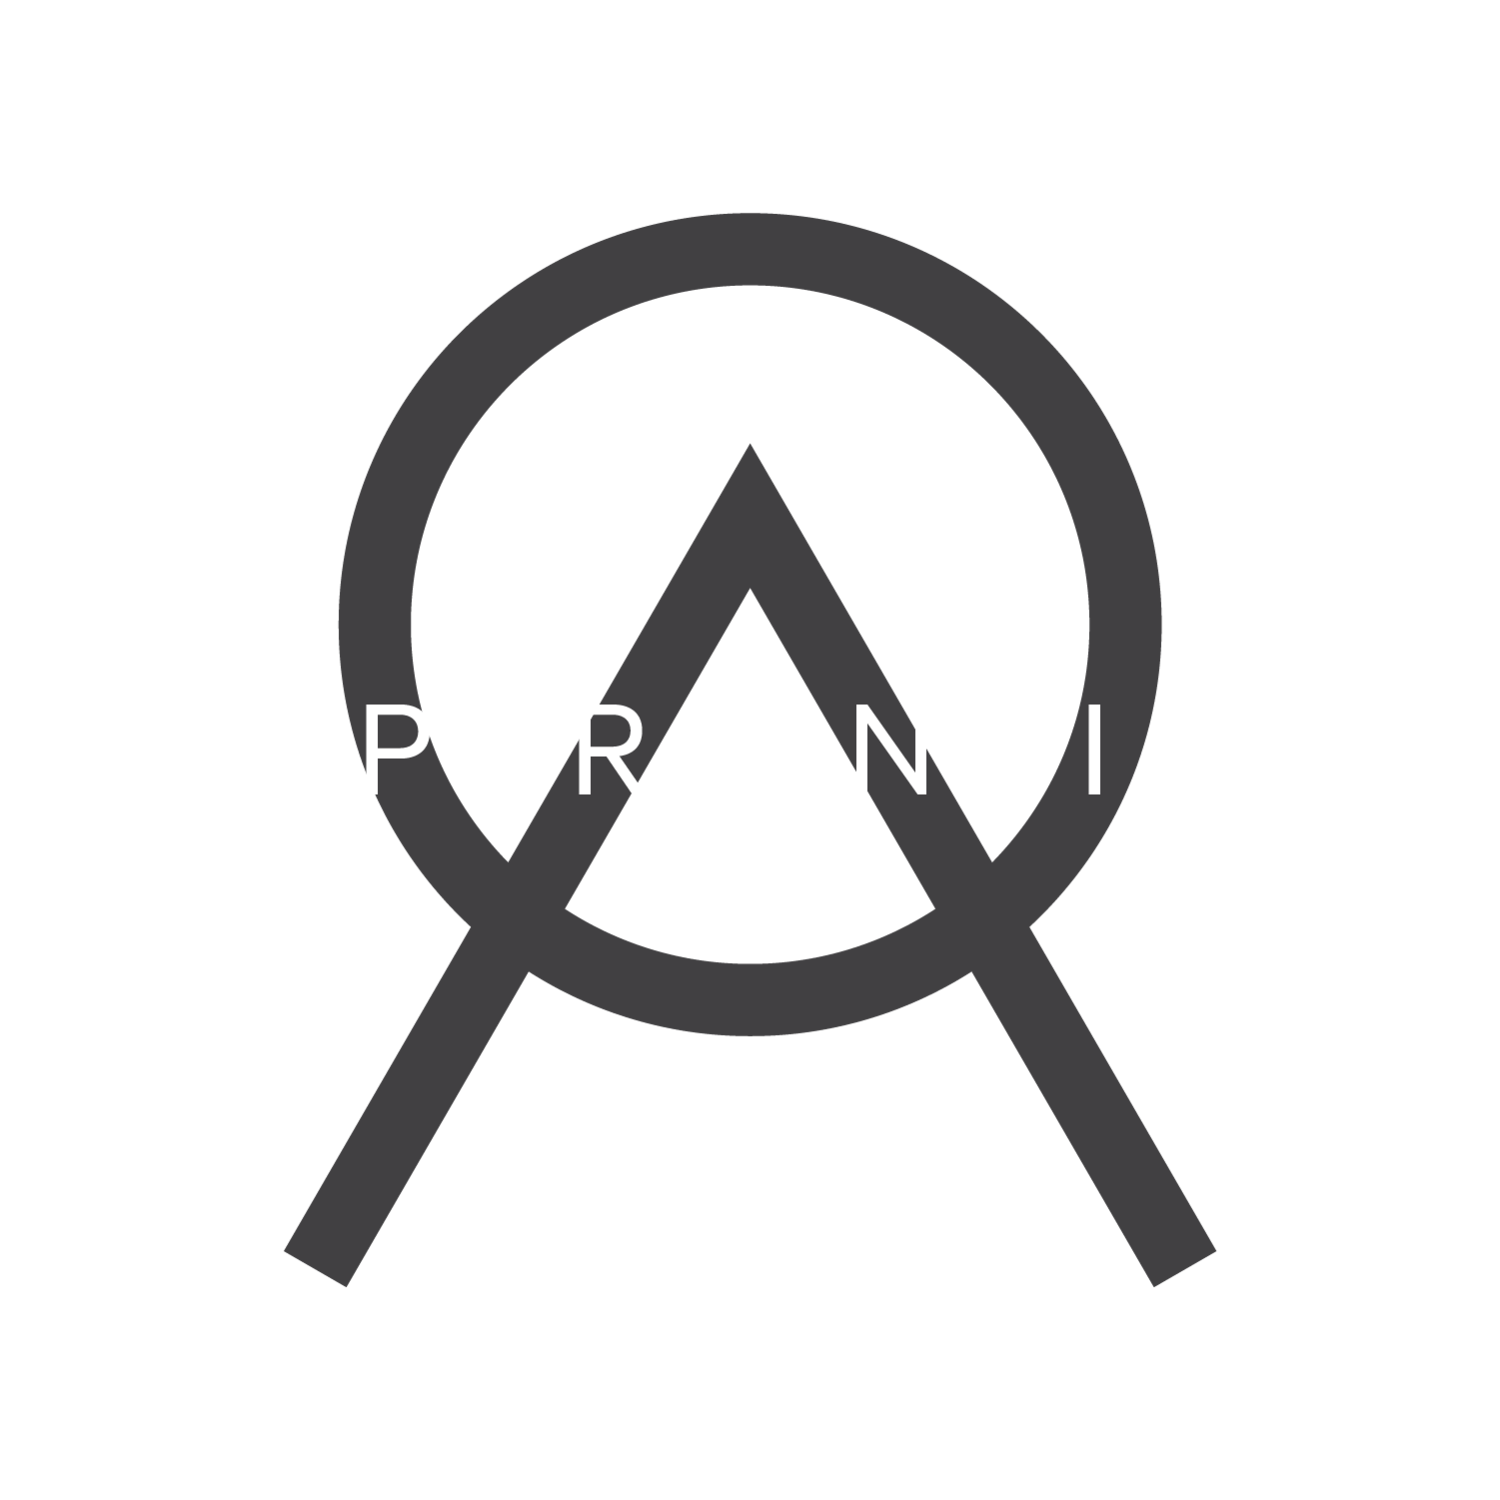 OA Experiential